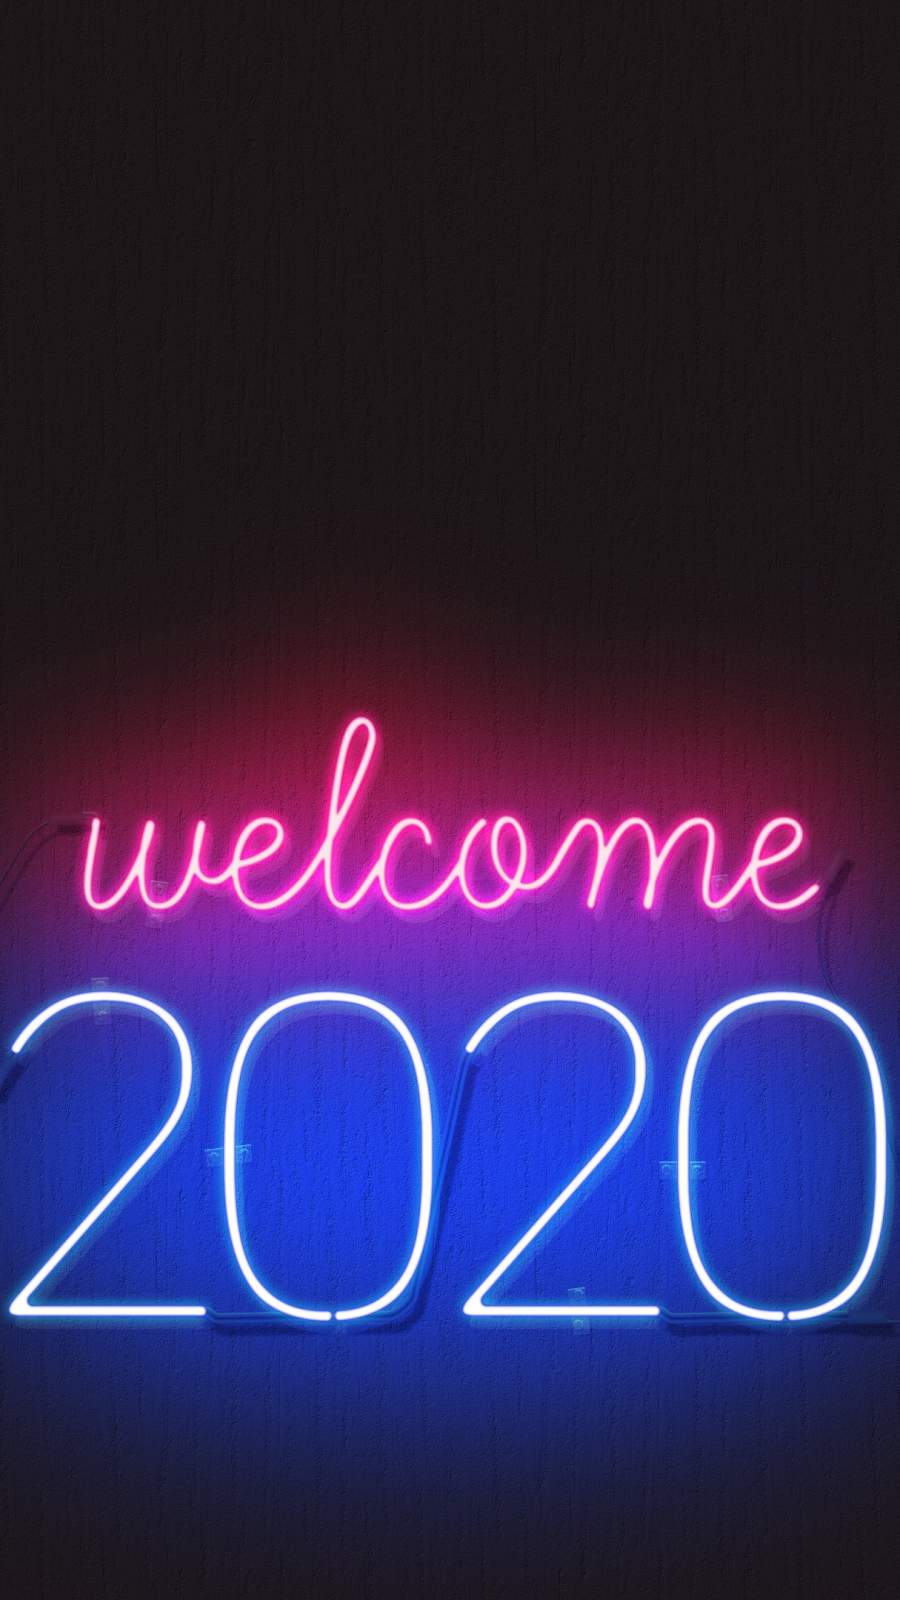 Welcome 2020 Happy New year Mobile Wallpaper